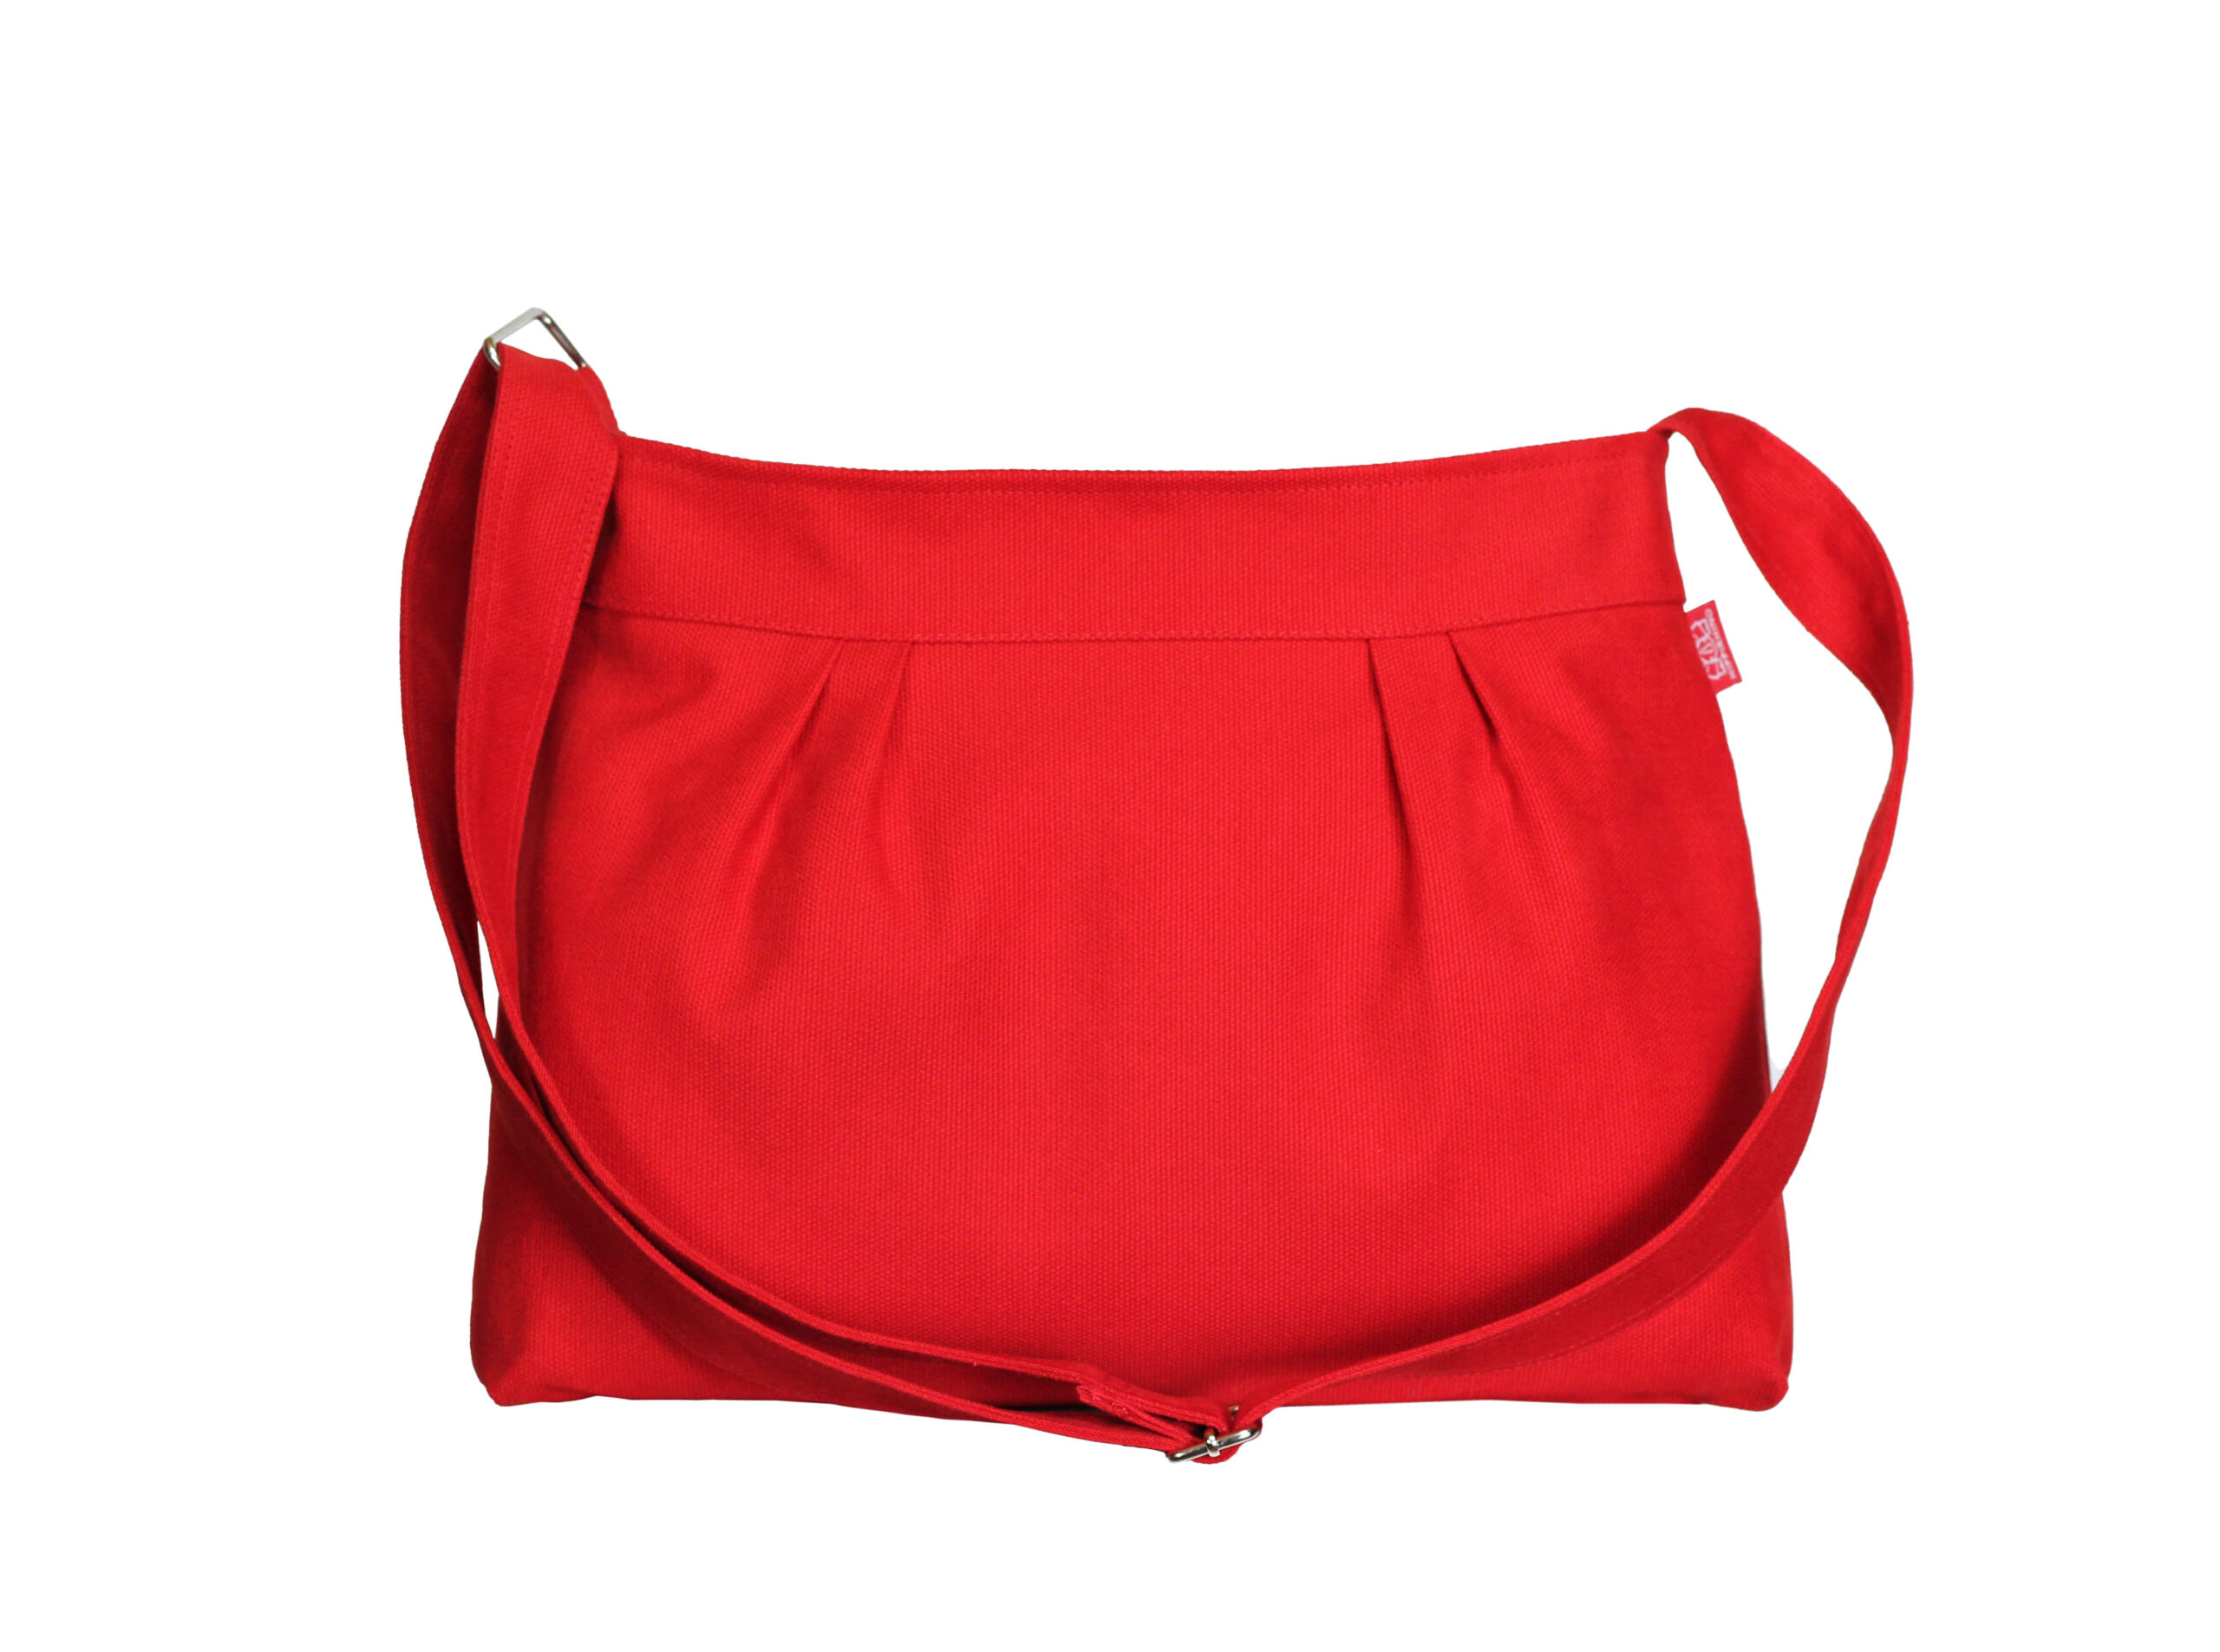 Red Small Pleated Canvas Purse Bag